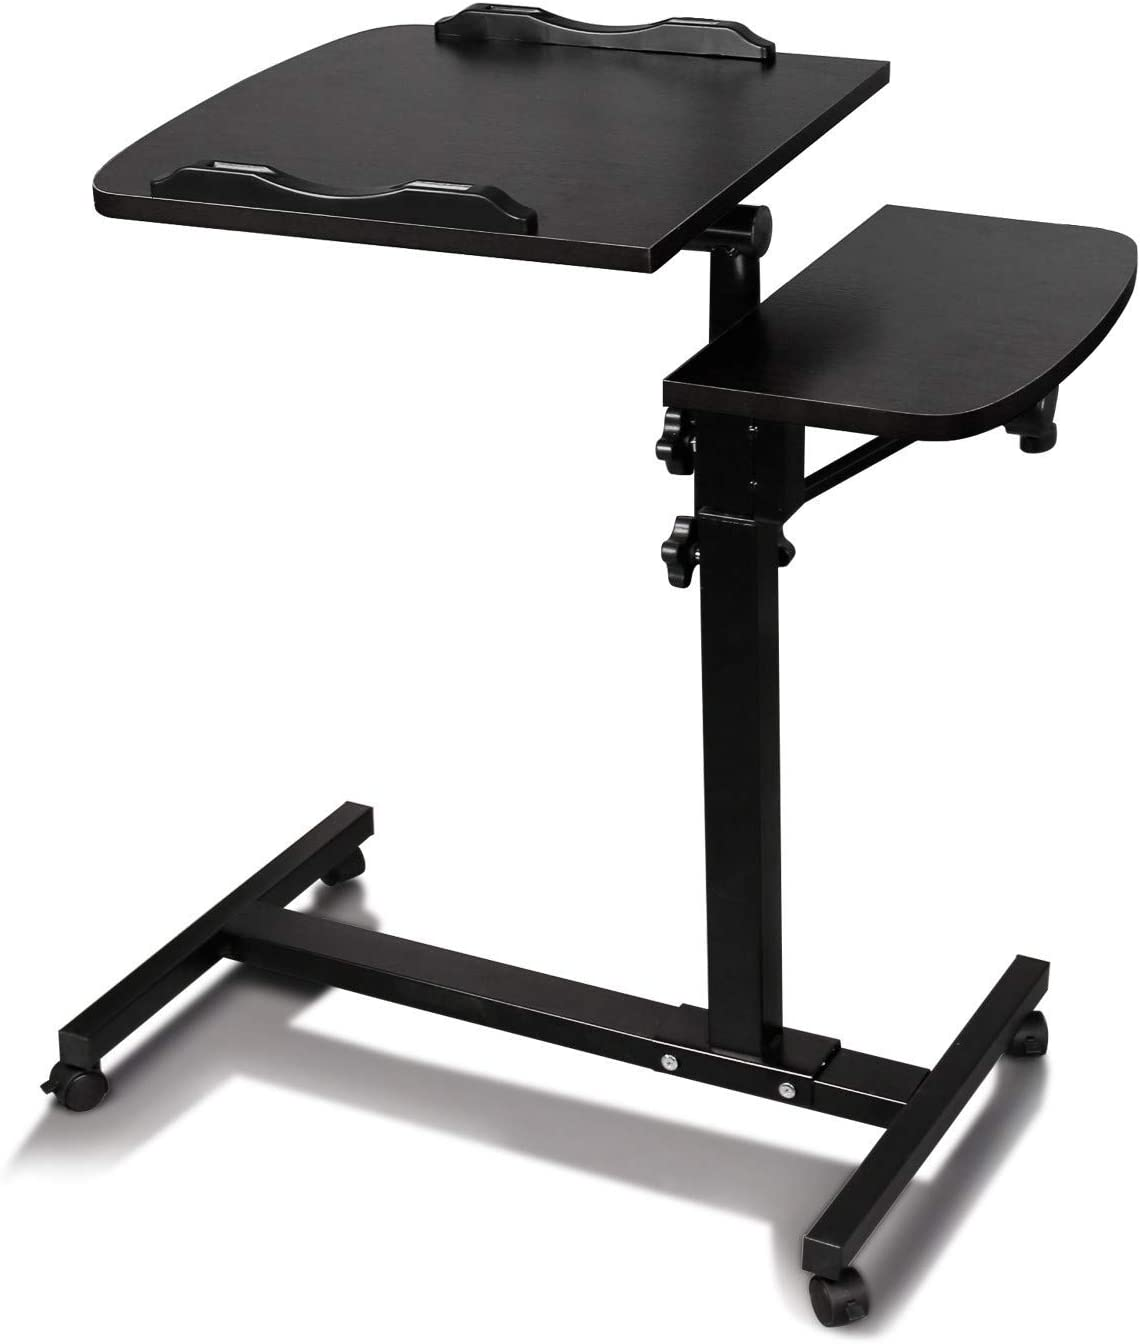 Hunputa Laptop Rolling Cart Table Height Adjustable Mobile Laptop Stand Desk Overbed Bedside Table with Wheels, Tilt Table for Hospital and Home Use